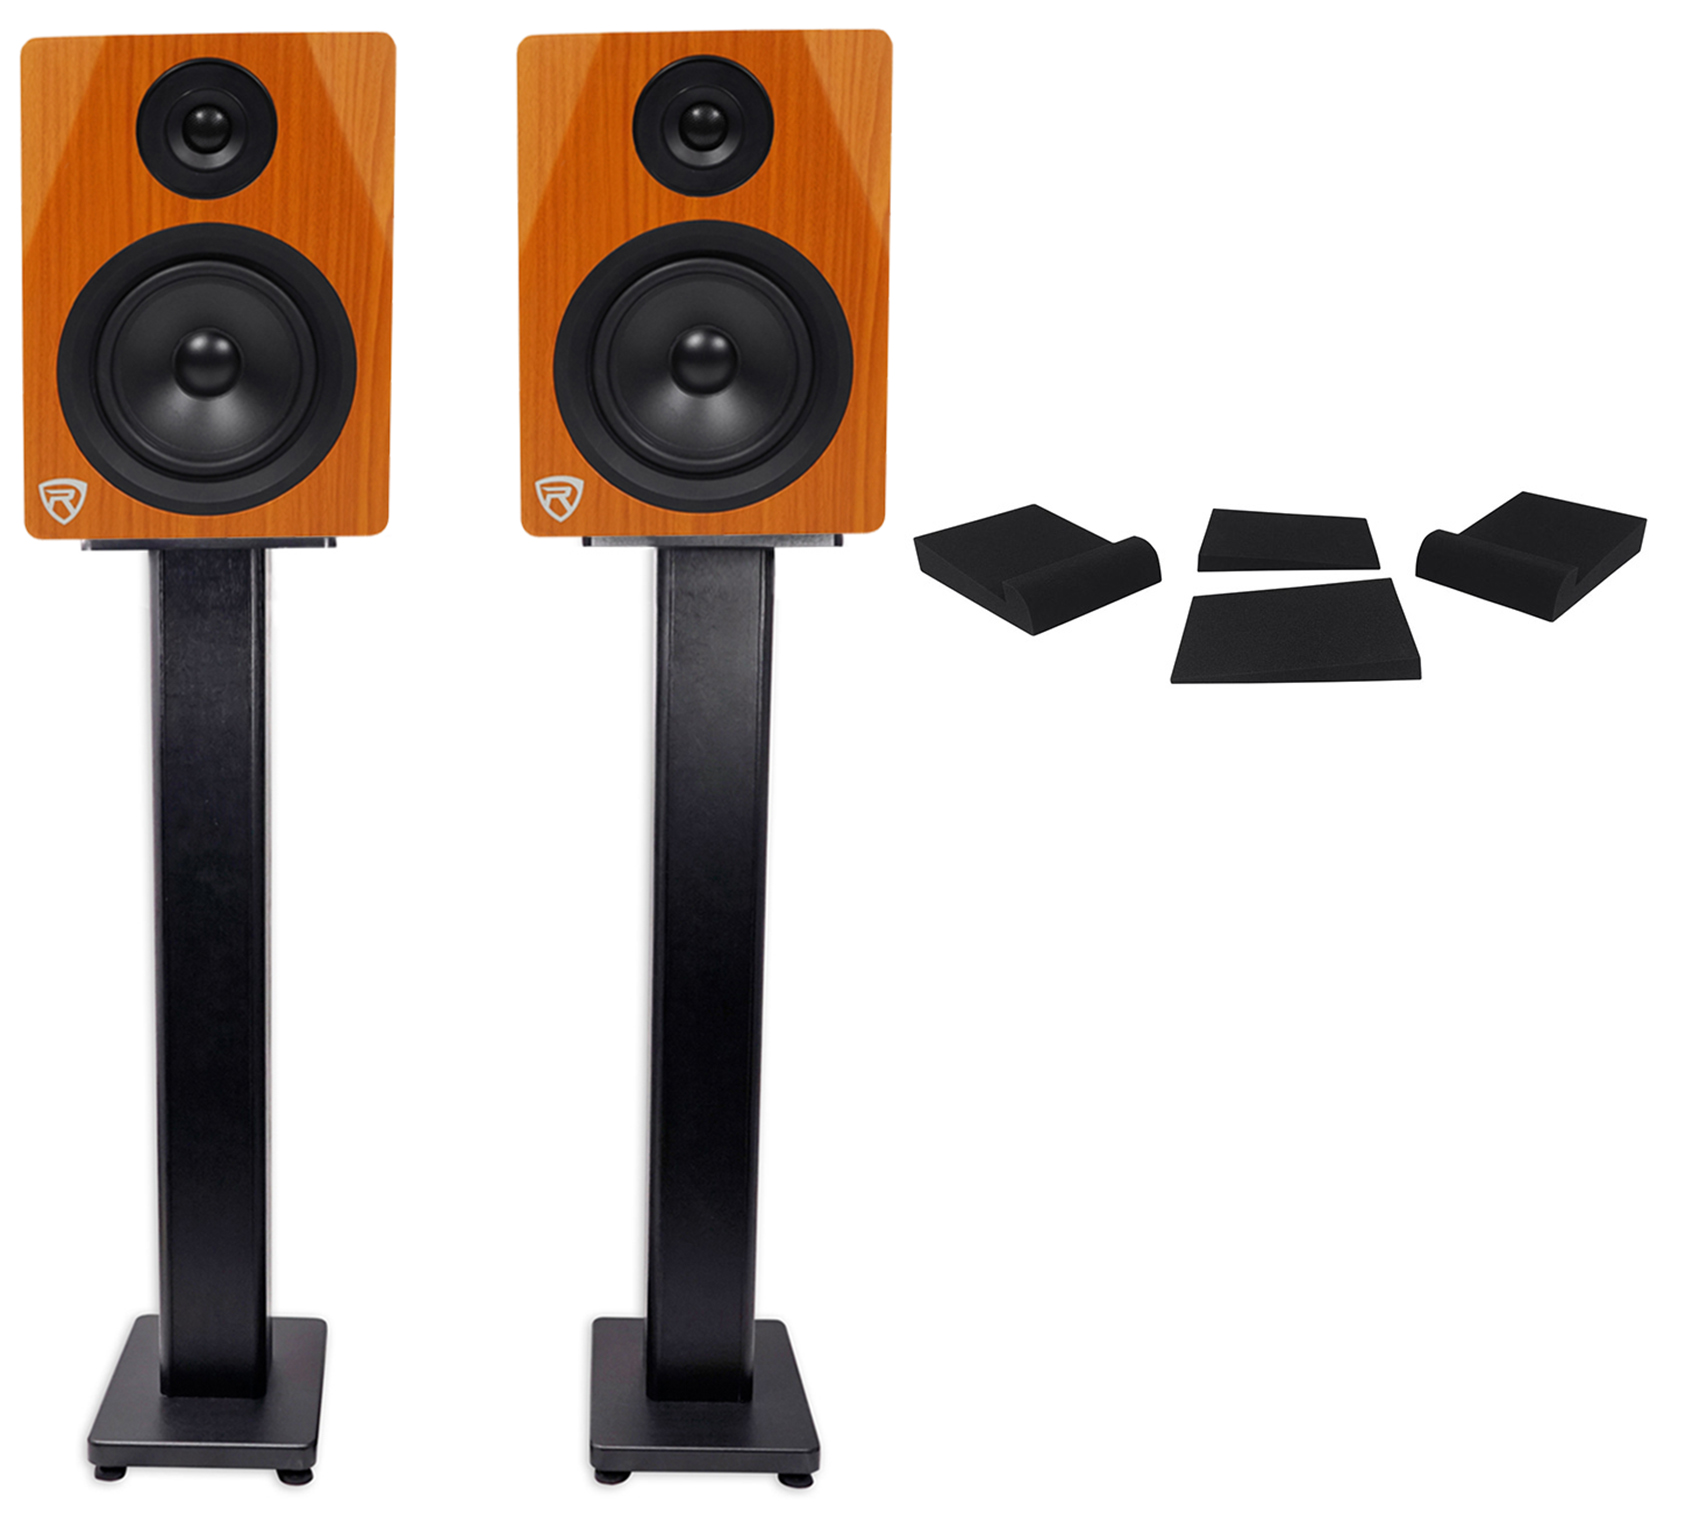 "(2) Rockville DPM5C Dual Powered 5.25"" 300w Active Studio Monitors+Stands+Pads by ROCKVILLE"